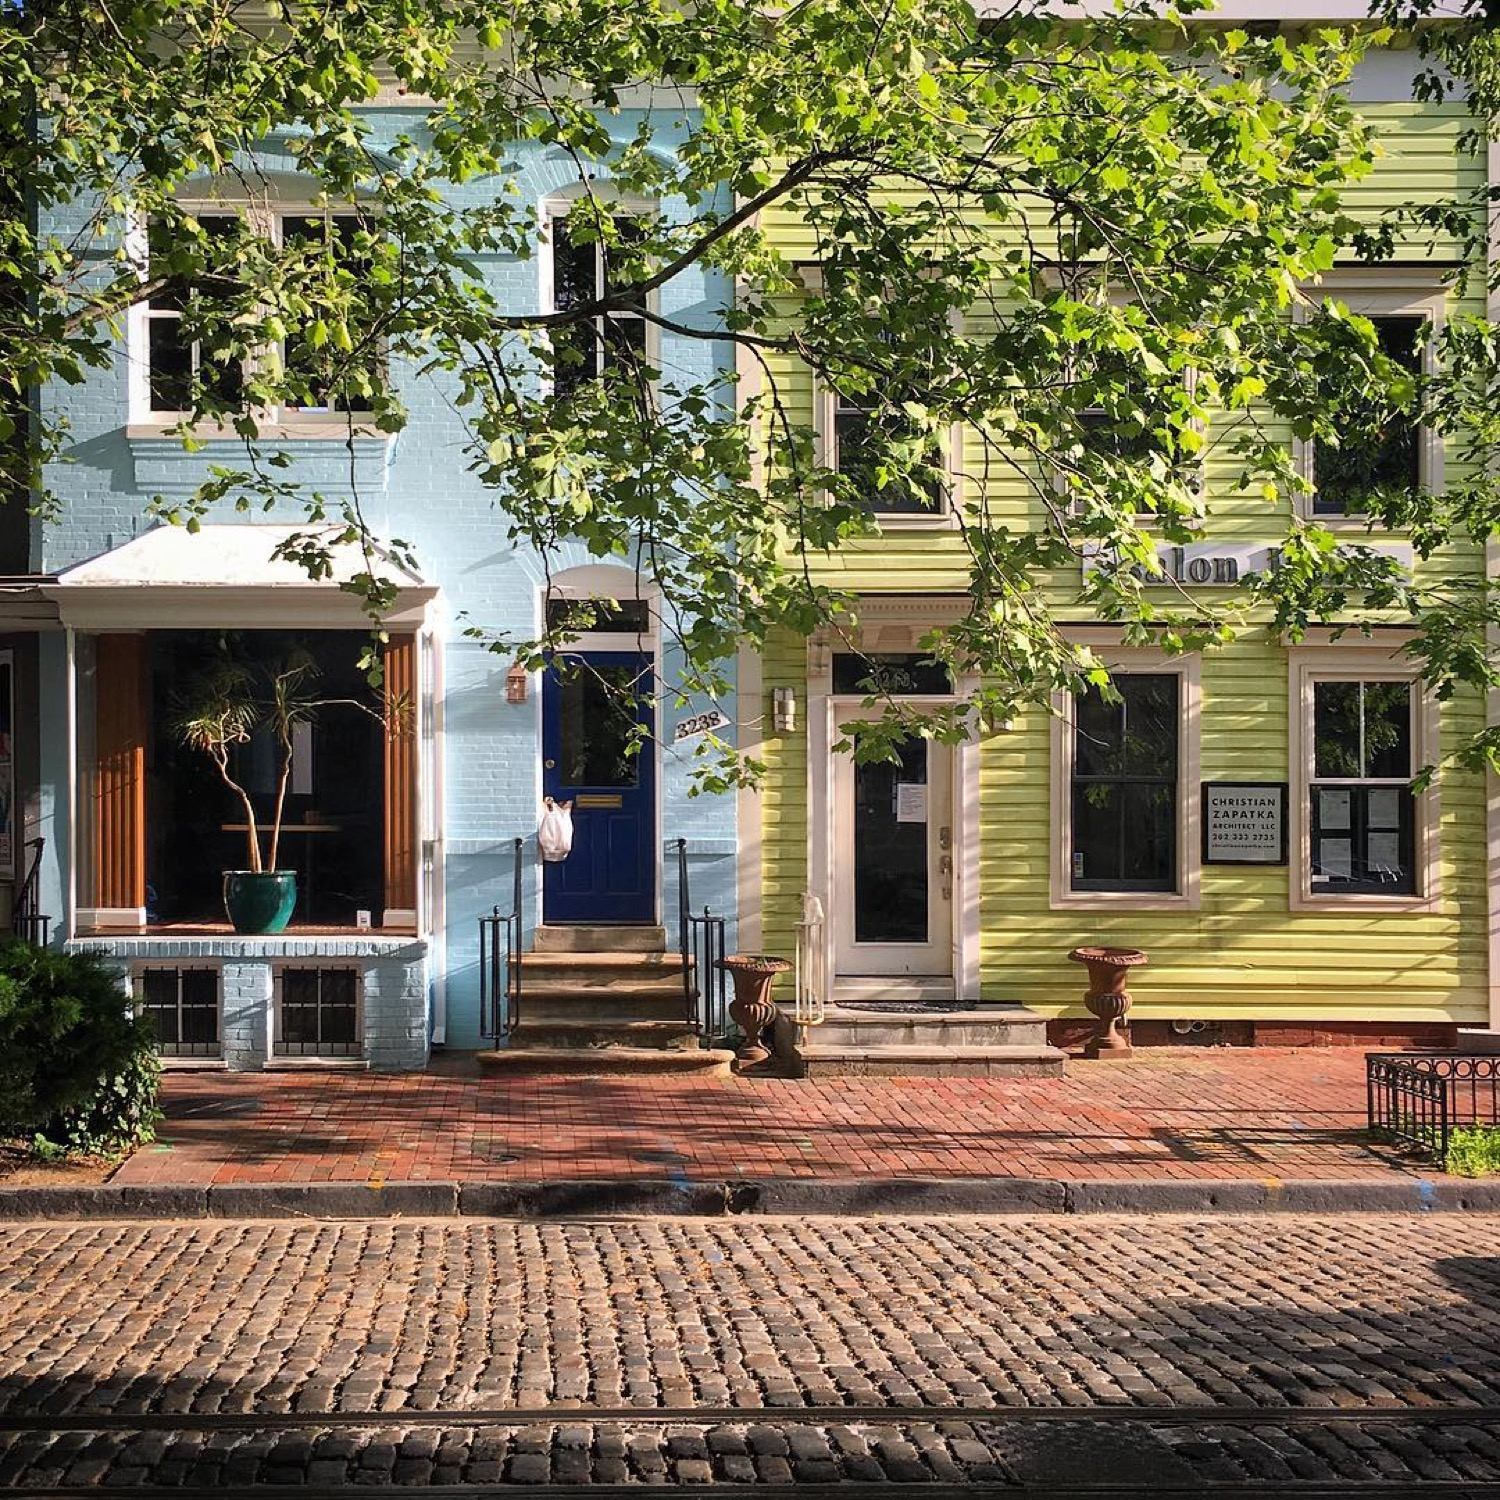 PLACE: Georgetown, Washington, DC / MILES FROM CINCY: 500 / ABOUT: But as long as we're on the subject, Georgetown is eye-catching in its own right. And t's home to the house JFK lived in while running for president (address: 2706 Olive Street). Not bad, eh? / Image courtesy of Instagram user @mnorthstar82 // Published: 5.14.17